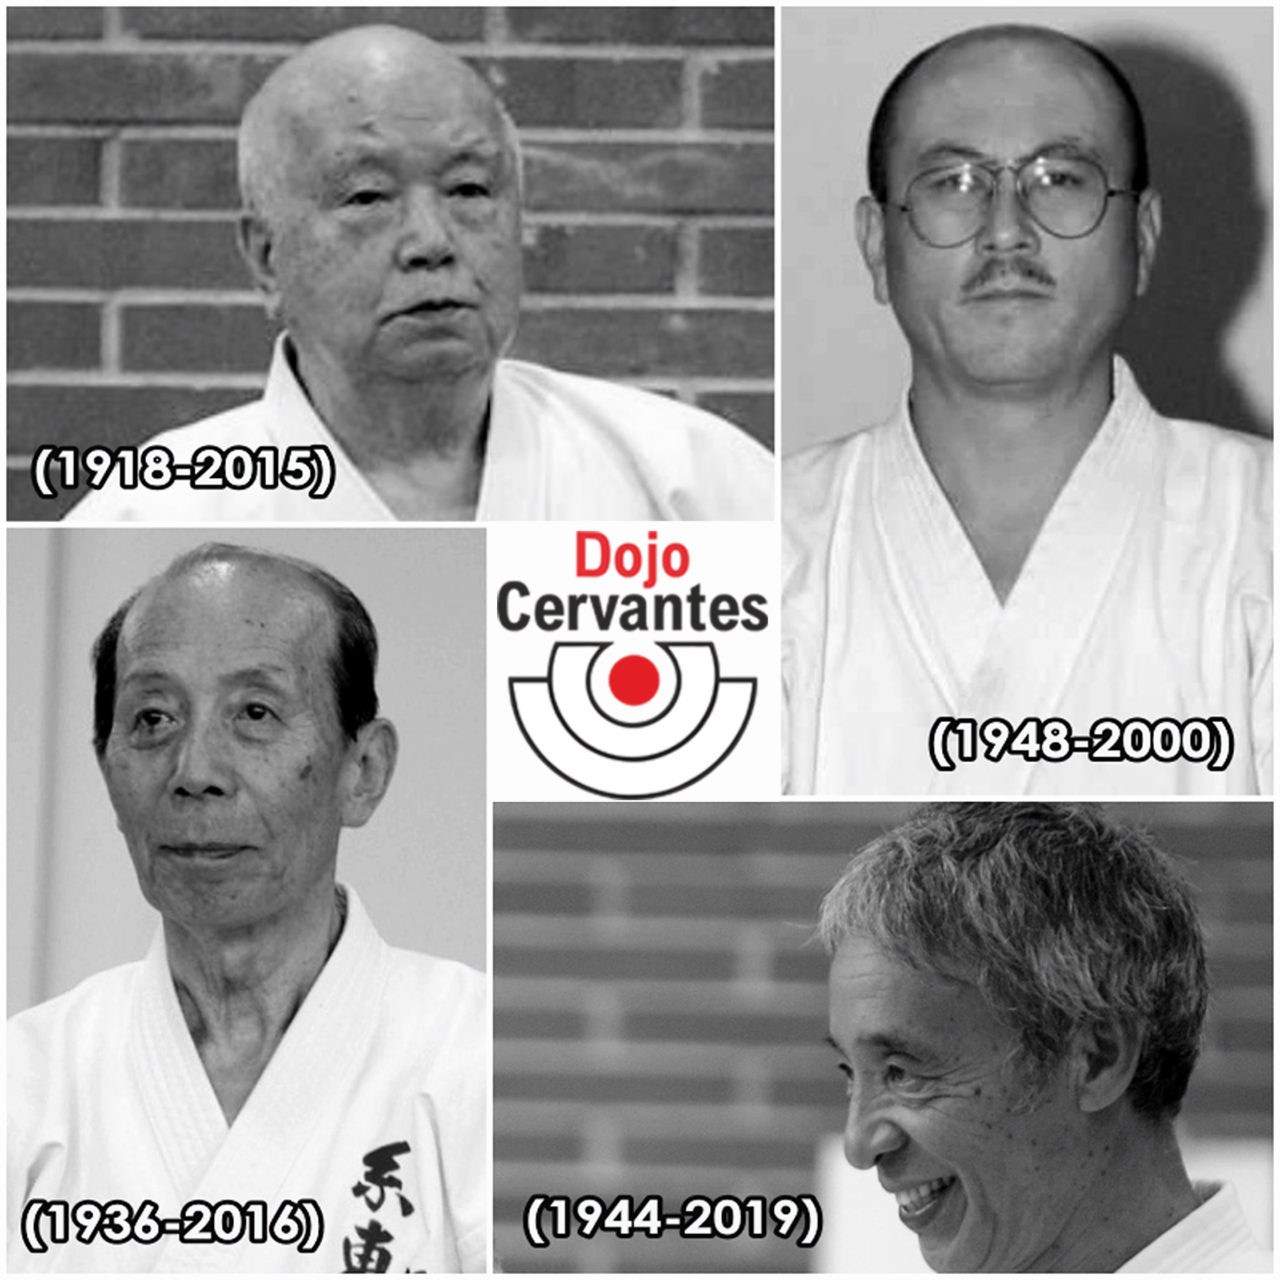 Los referentes de la enseñanza del Dento Shito Ryu Karate-Do